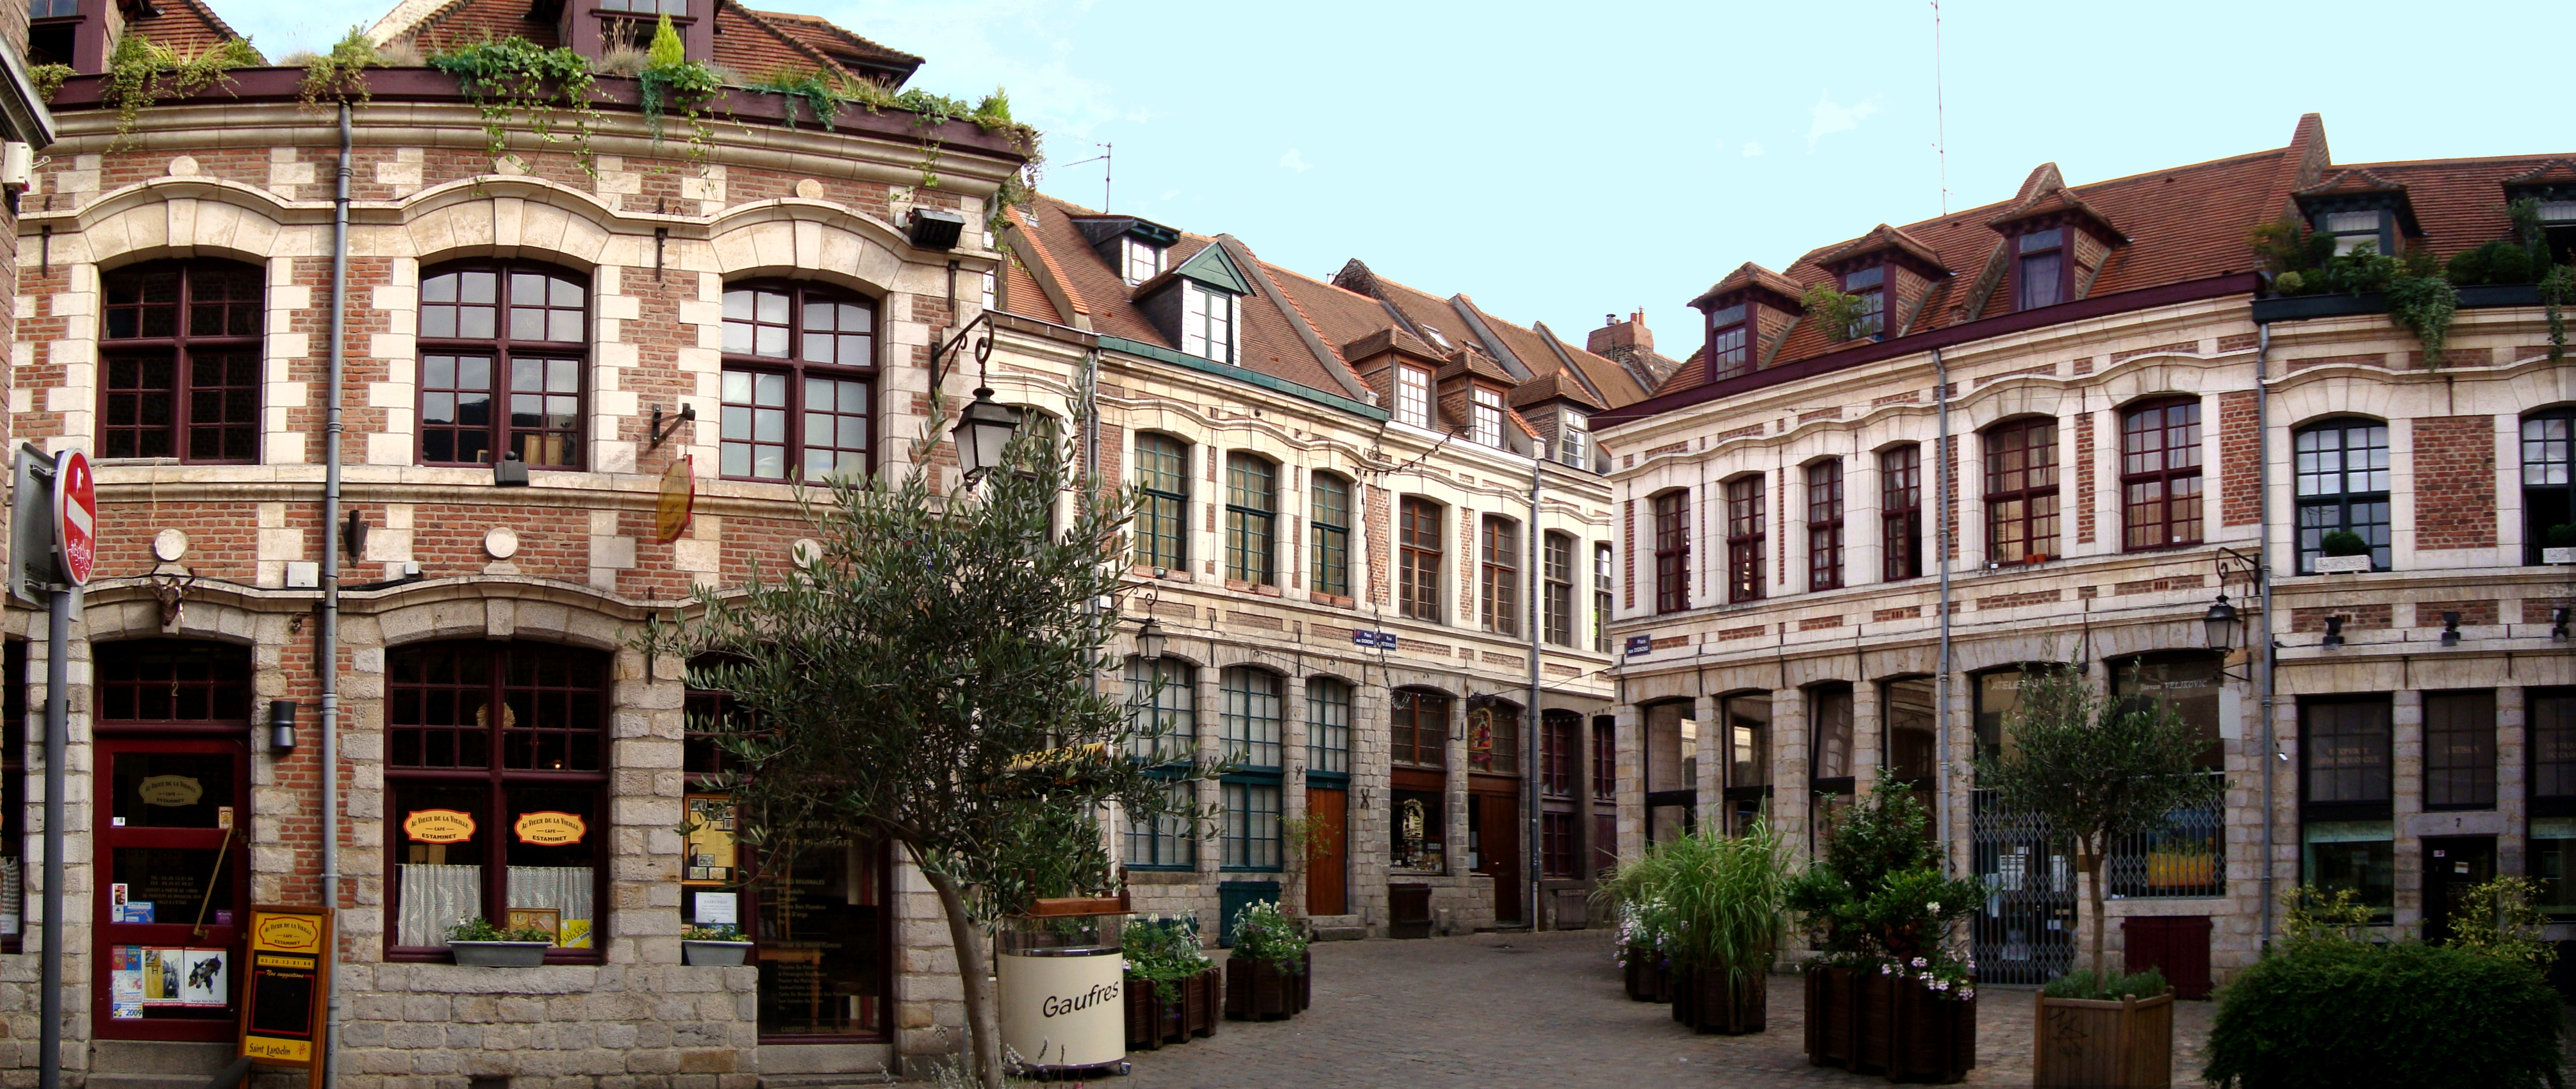 https://upload.wikimedia.org/wikipedia/commons/4/47/Lille_place_aux_oignons.JPG